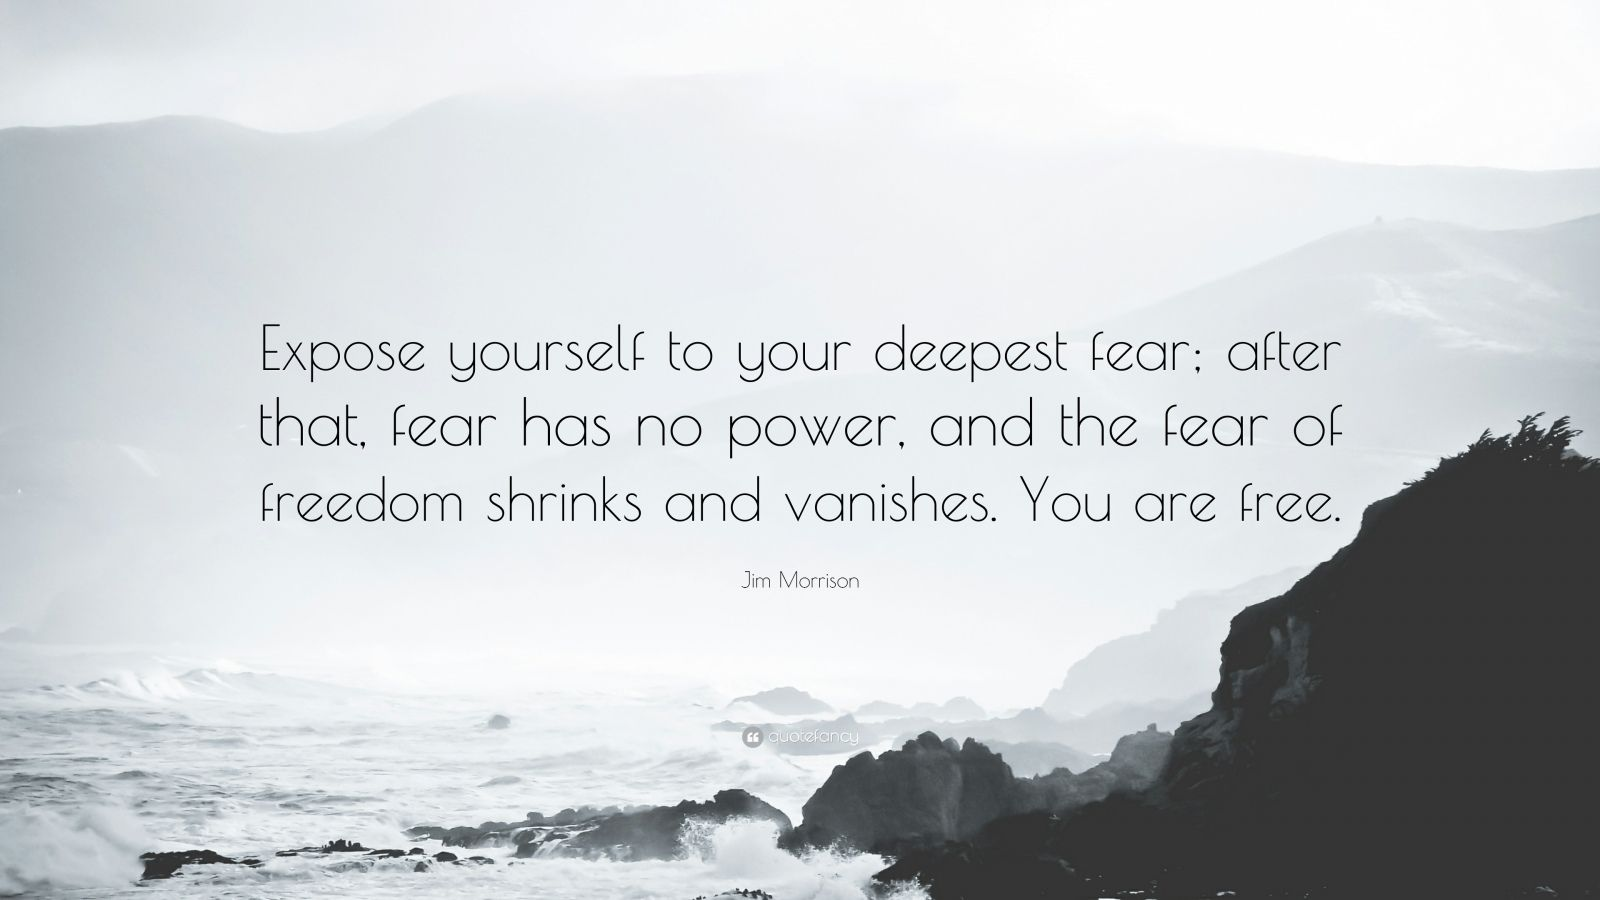 """Jim Morrison Quote: """"Expose yourself to your deepest fear; after that, fear has no power, and the fear of freedom shrinks and vanishes. You are free."""""""